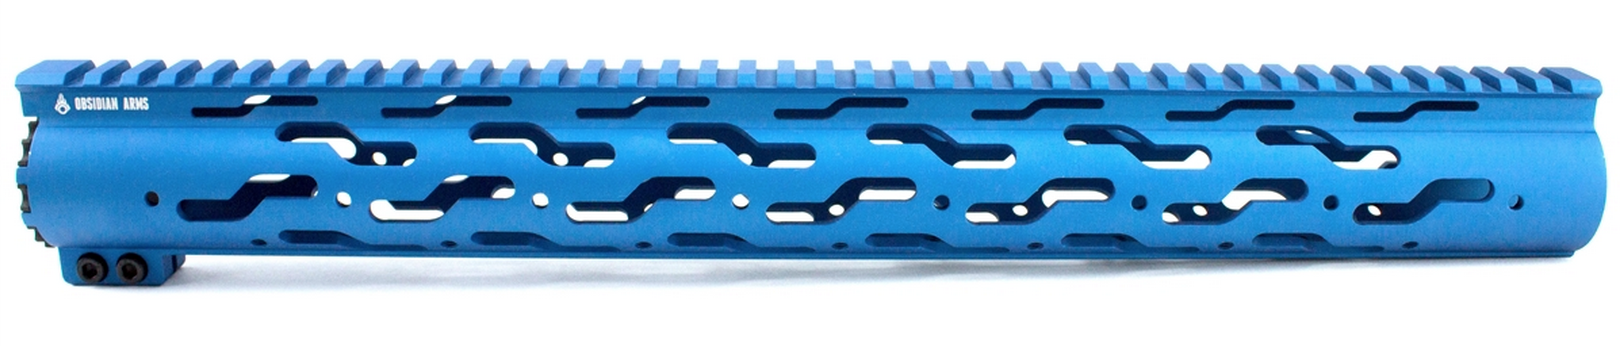 "S-Pattern Free Float Handguard |16.5"", Blue, AR-15"